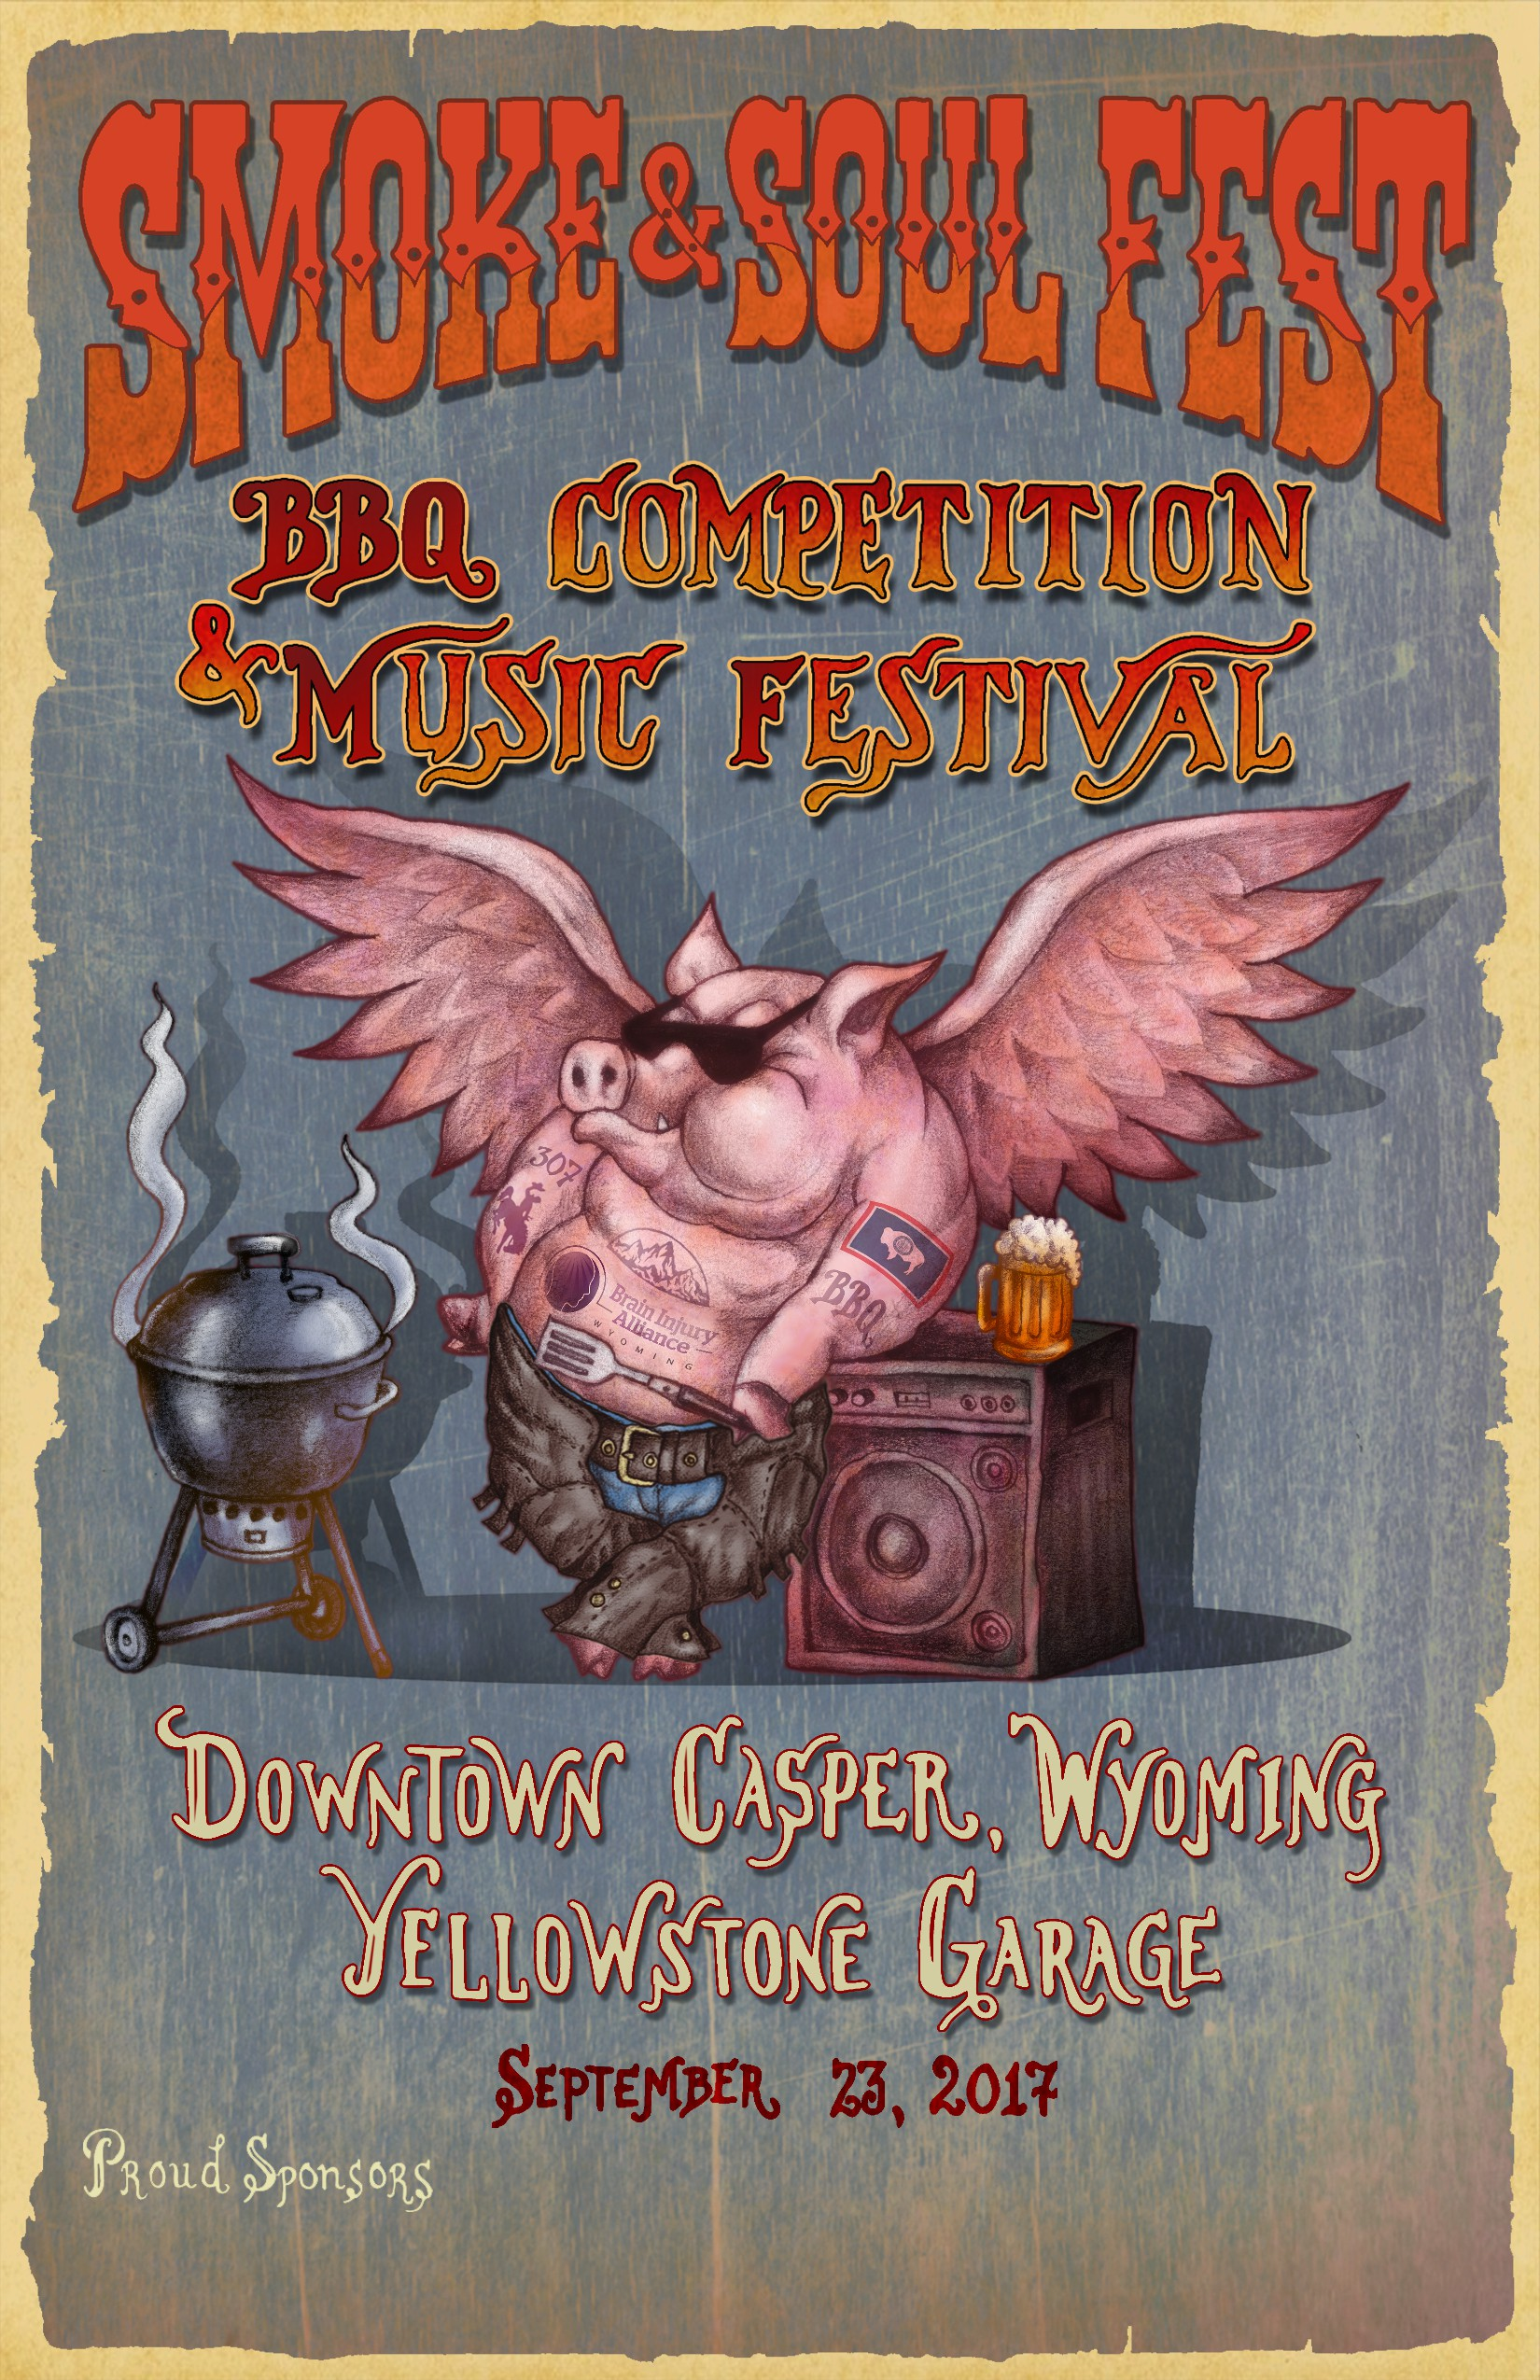 GUARANTEED PRIZE: Smoke & Soul Fest Wants a Tattooed Pig Mascot For a BBQ, Beer & Music Festival